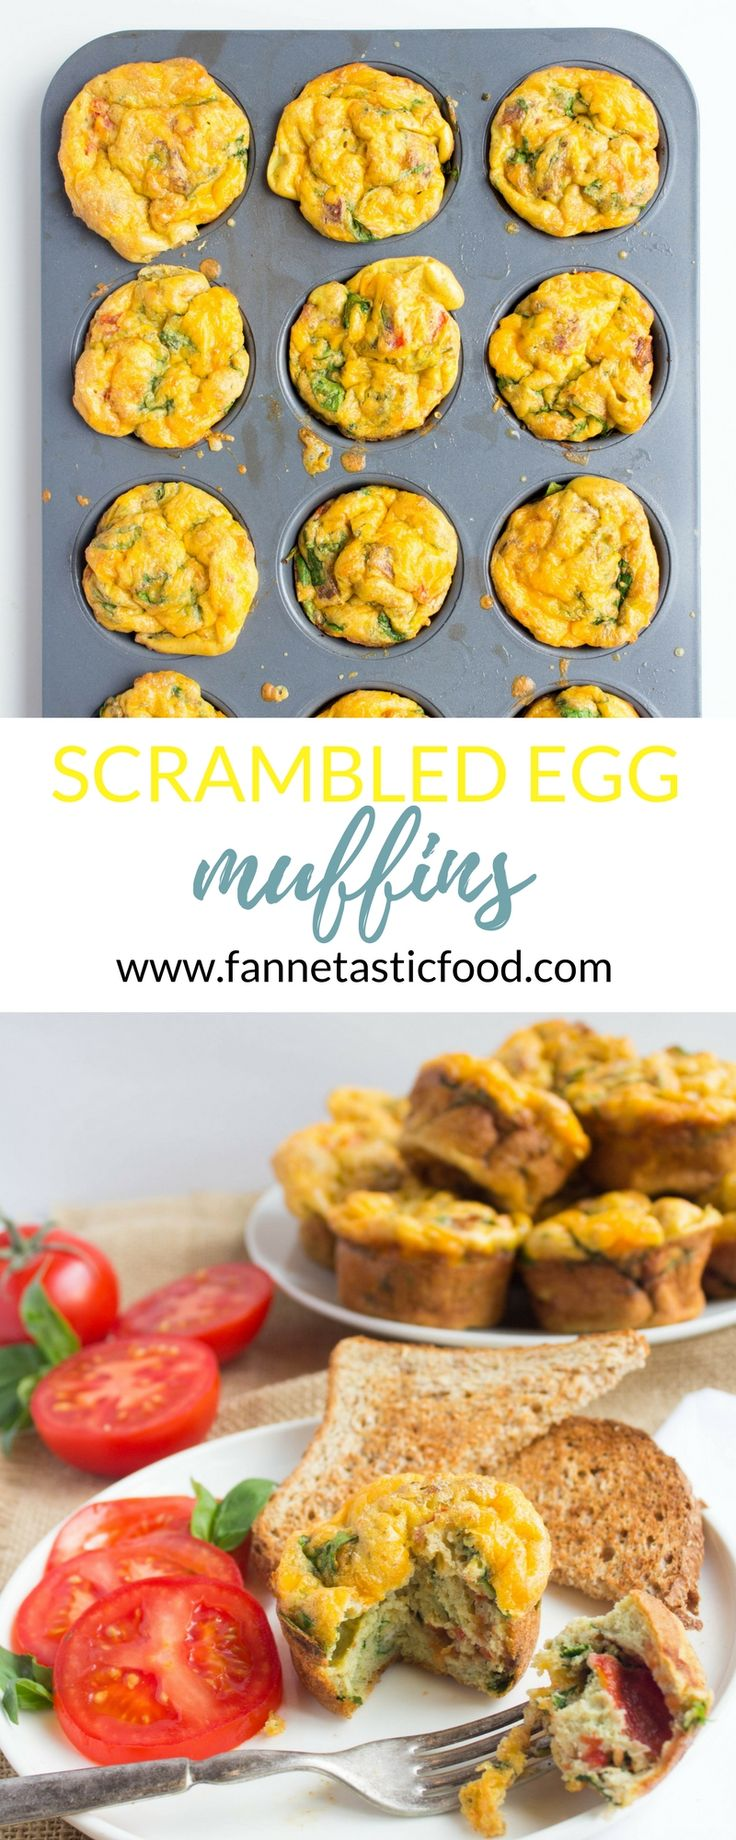 Scrambled Egg Muffins - cook once and eat scrambled eggs for breakfast all week! Easy, healthy, veggie-packed, cheesy scrambled eggs just got even easier.  | make ahead breakfast ideas | healthy egg muffins | easy brunch ideas | healthy breakfast recipes |